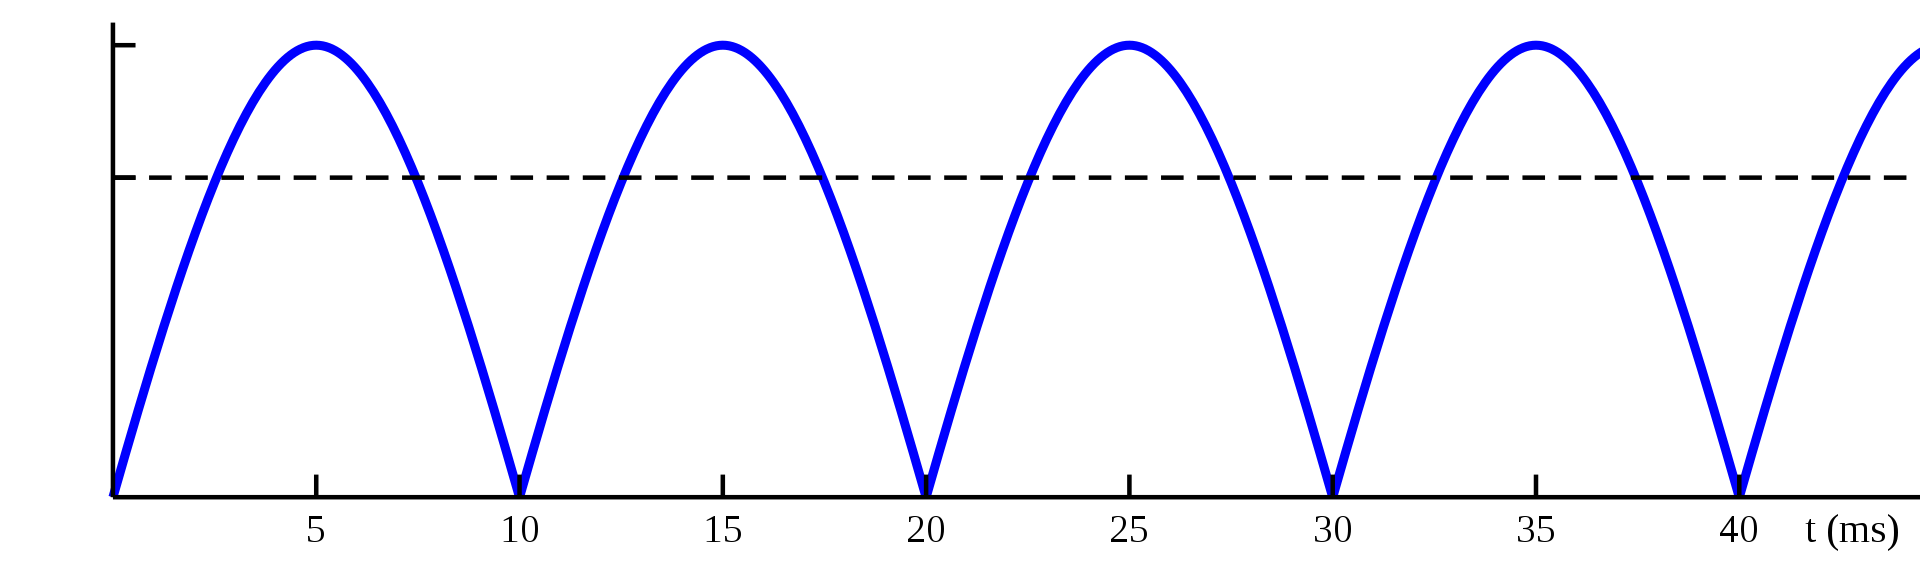 Full-wave_rectified_sine